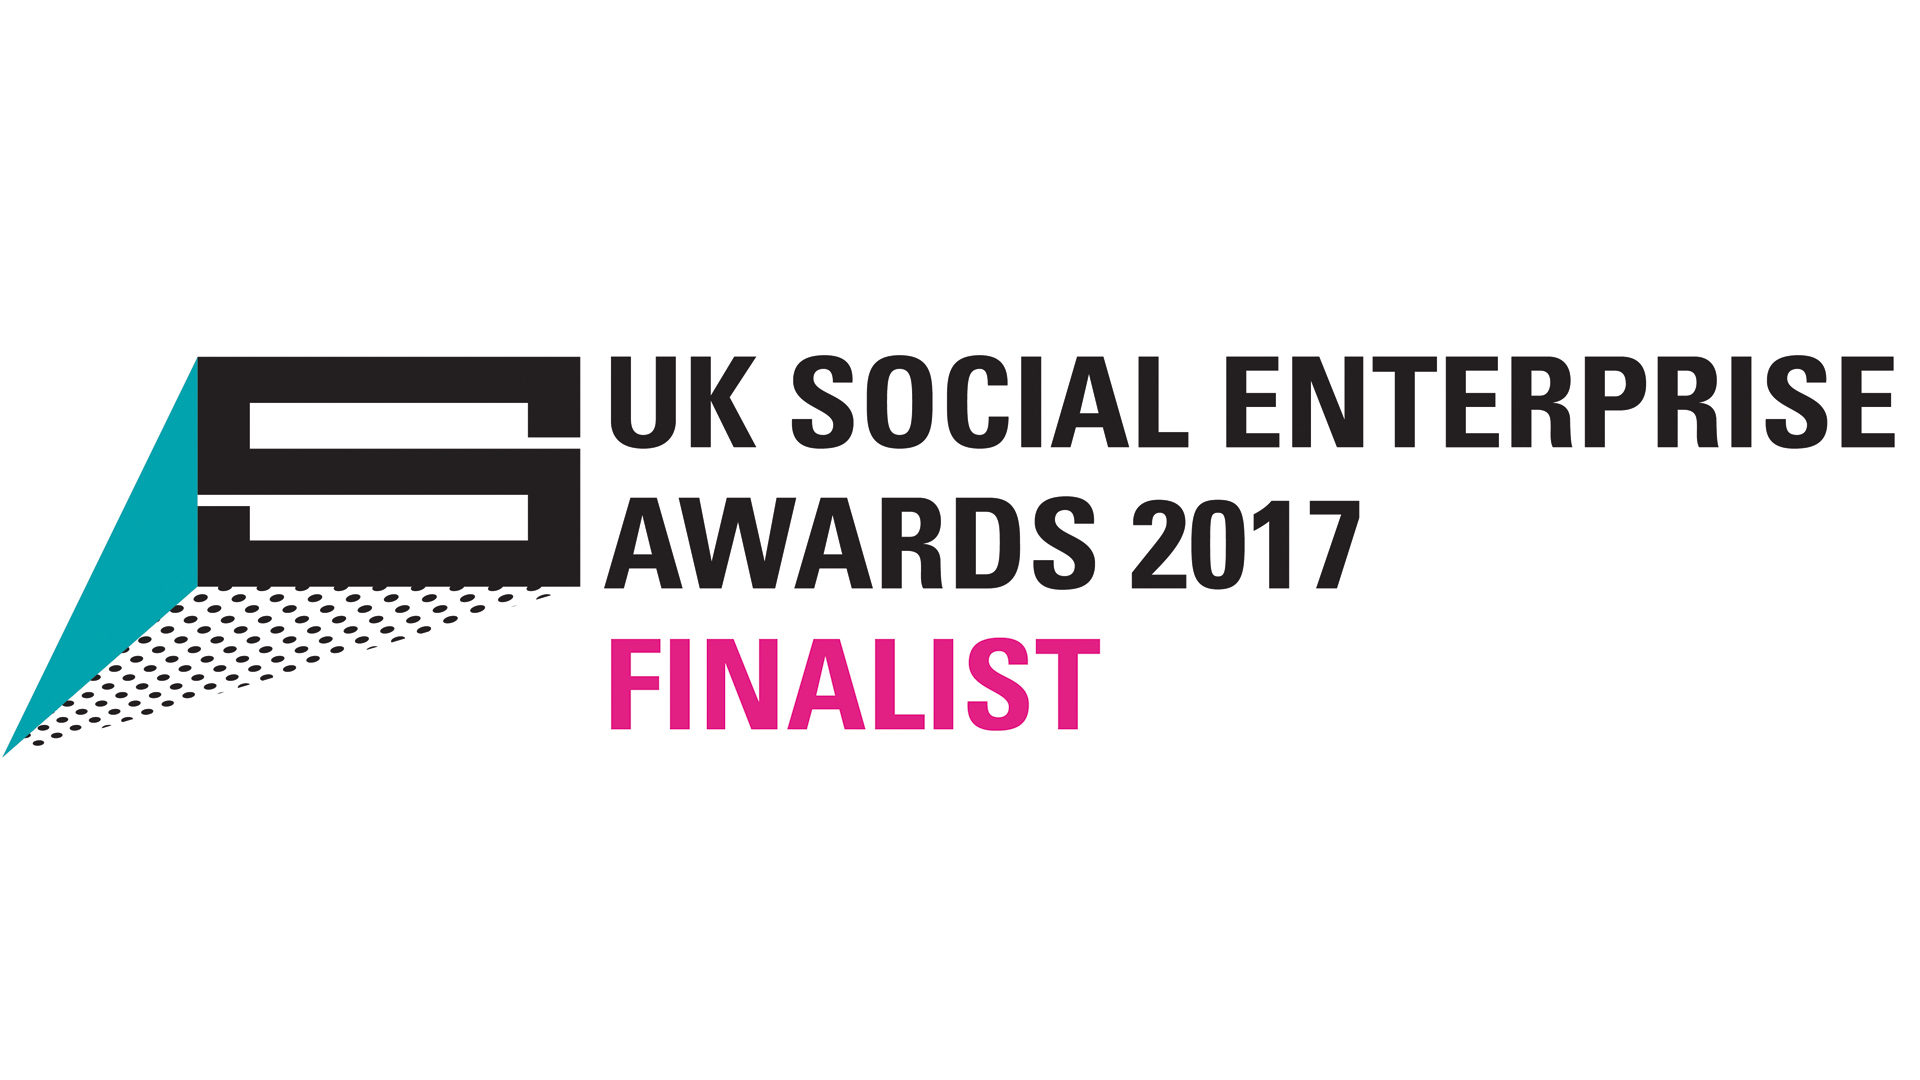 Employers For Childcare finalist in the UK Social Enterprise Awards 2017